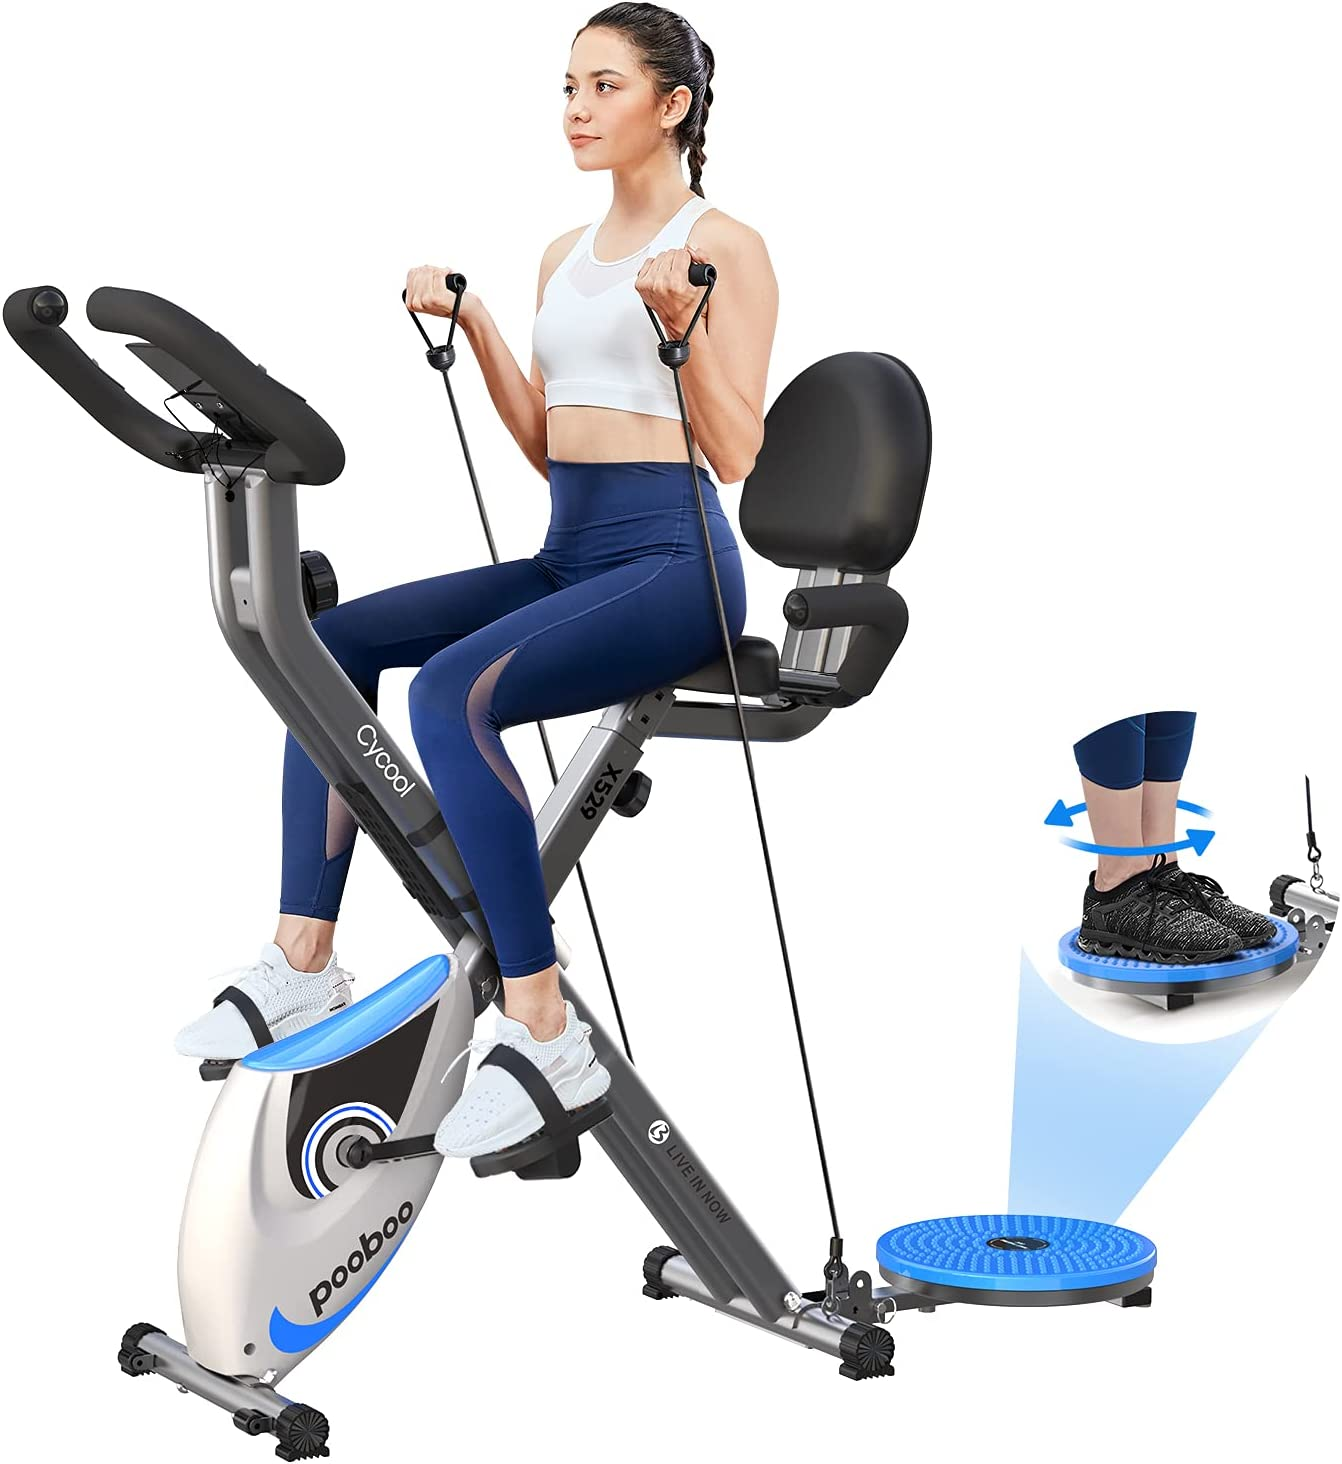 cycool Foldable Exercise Bike Magnetic Stationary Bikes Indoor Cardio Training Cycle with Comfortable Seat Cushion,Twister Plate and Arm Resistance Bands Workout Bicycle